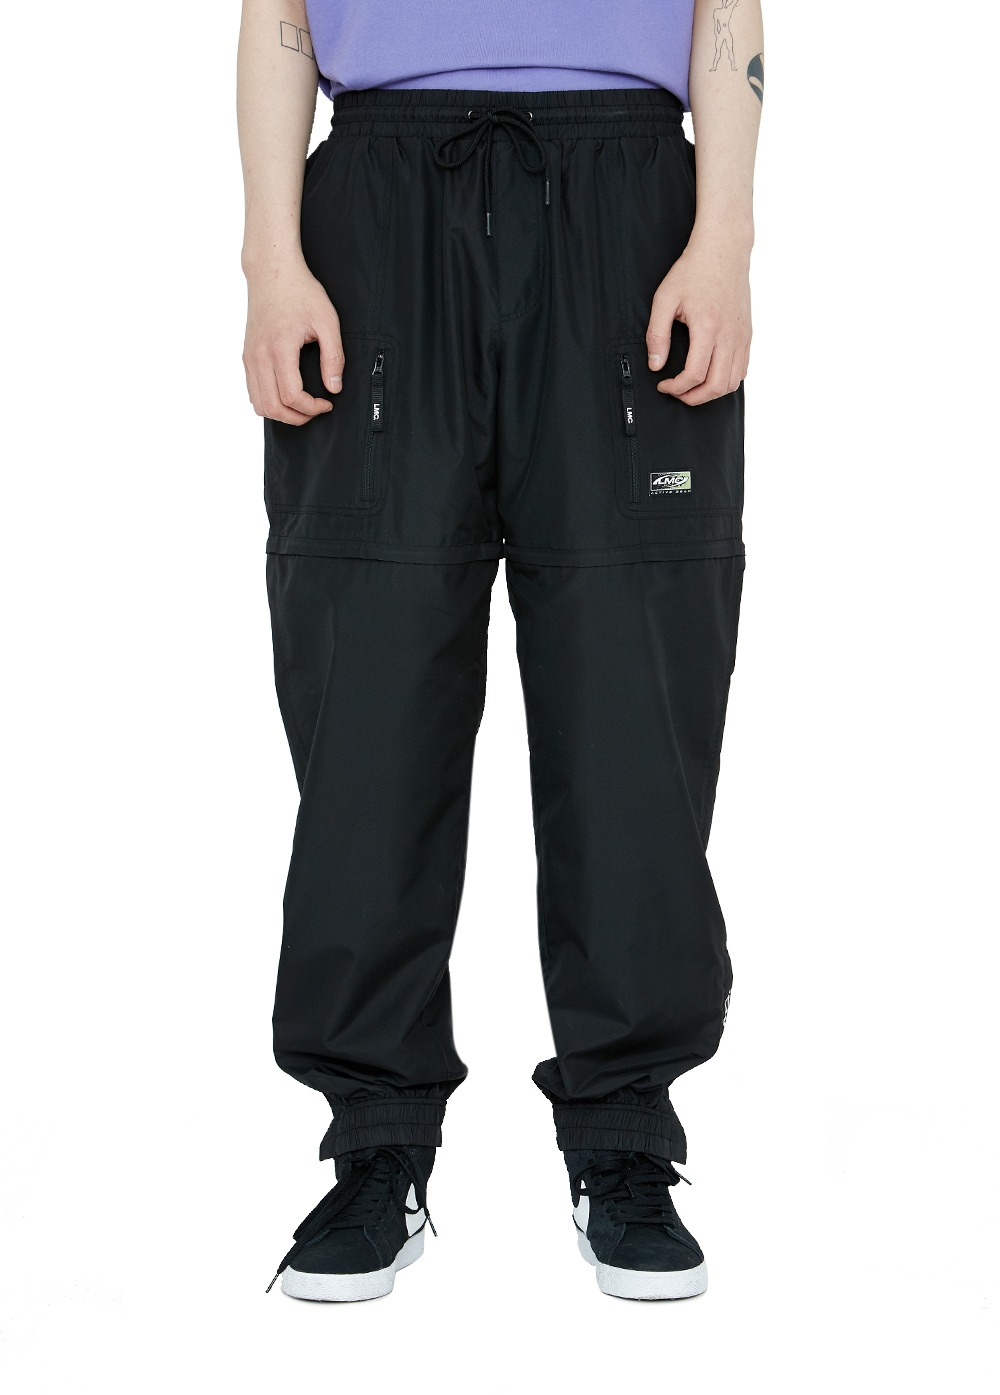 LMC ACTIVE GEAR TRANSFORM PANTS black